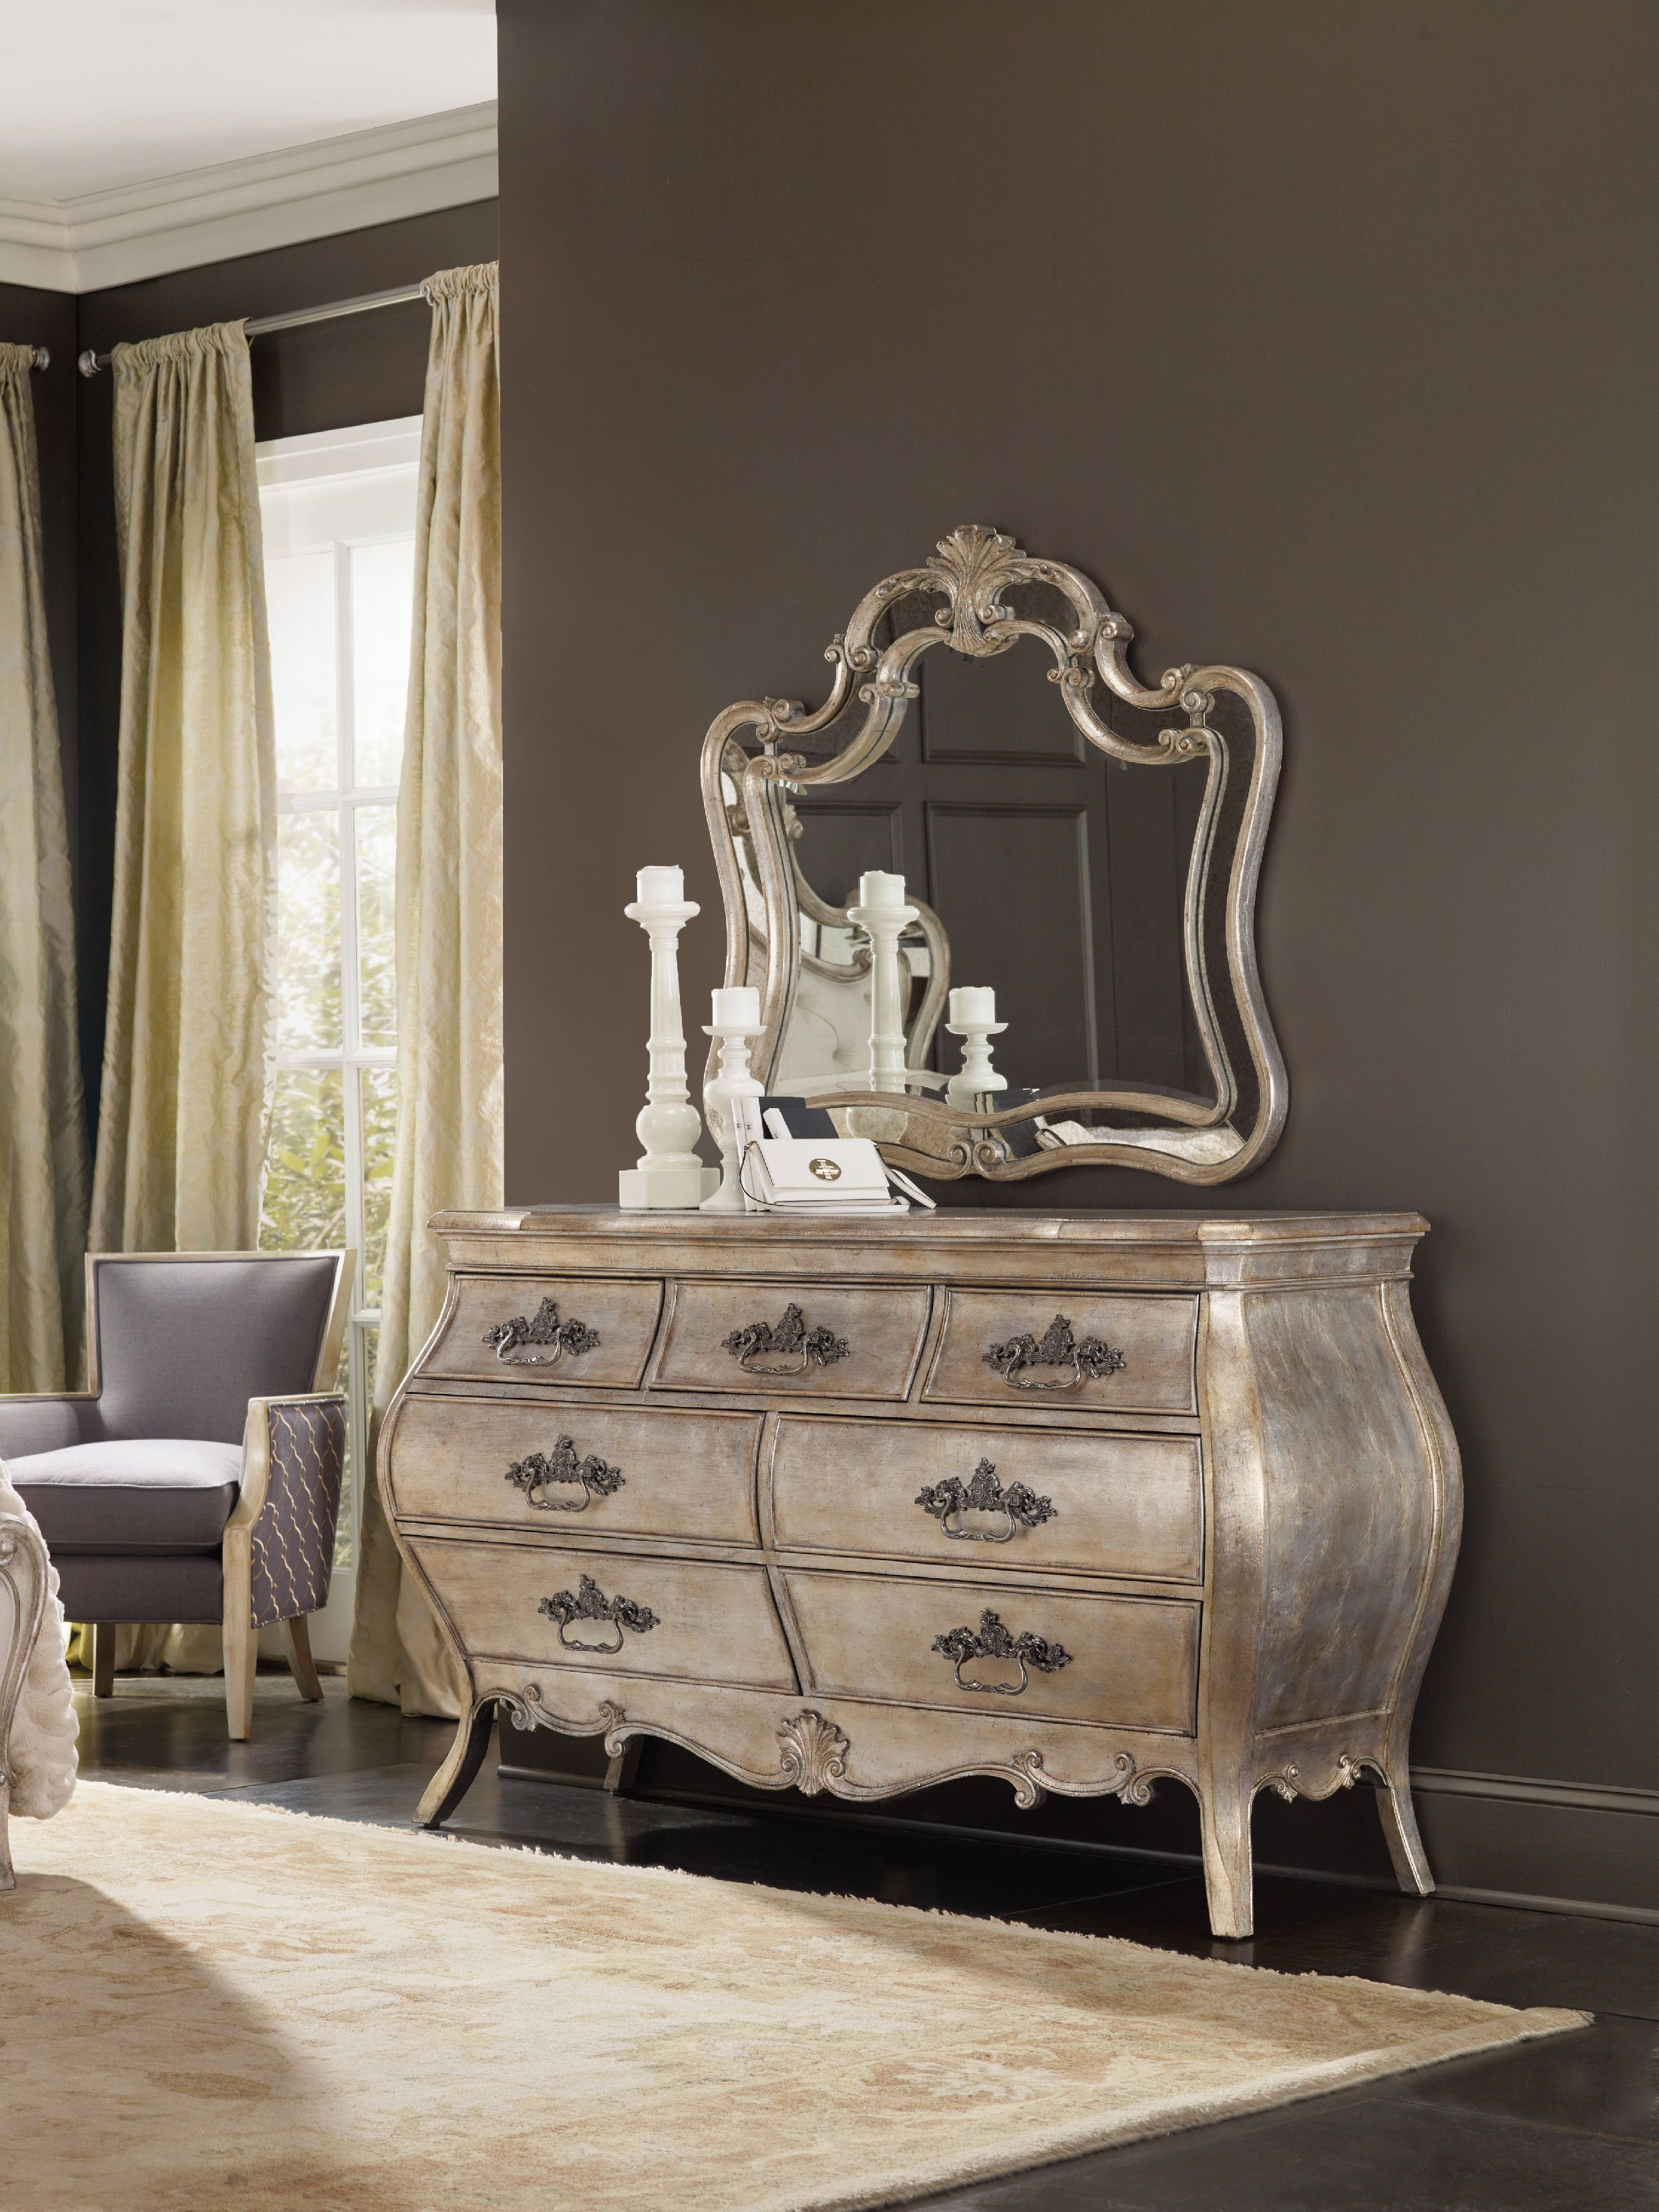 Hooker Furniture Bedroom Sanctuary Dresser 5413-90002